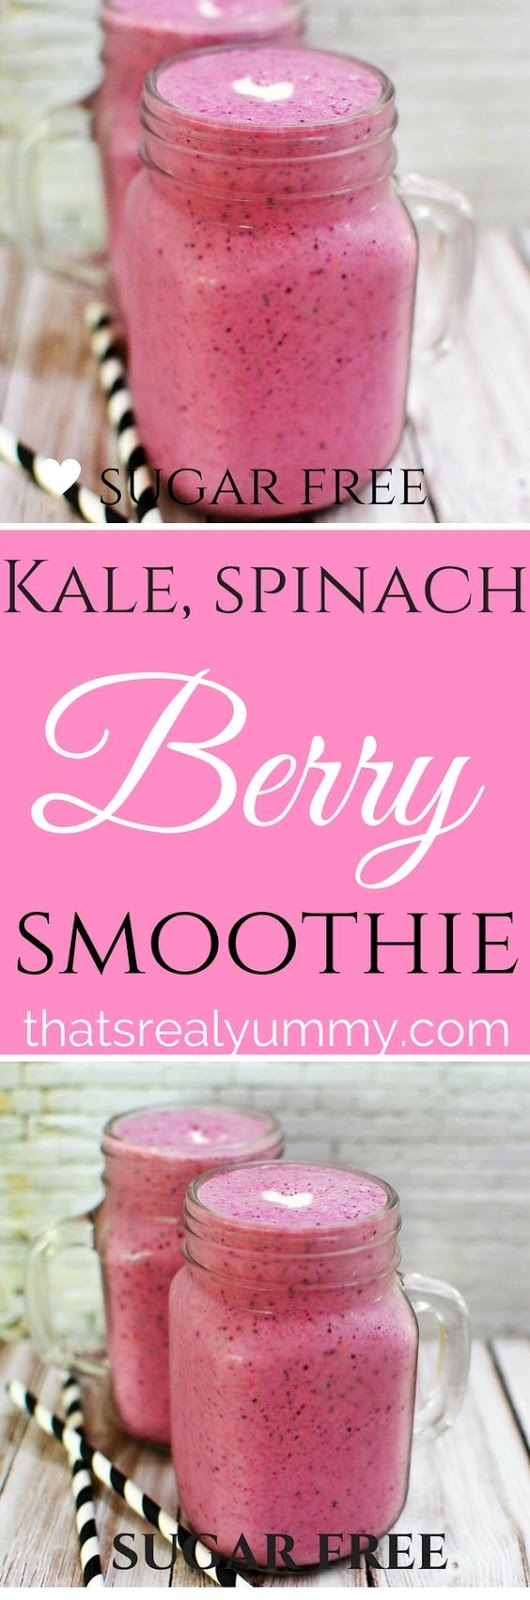 Kale Spinach & Berry Smoothie